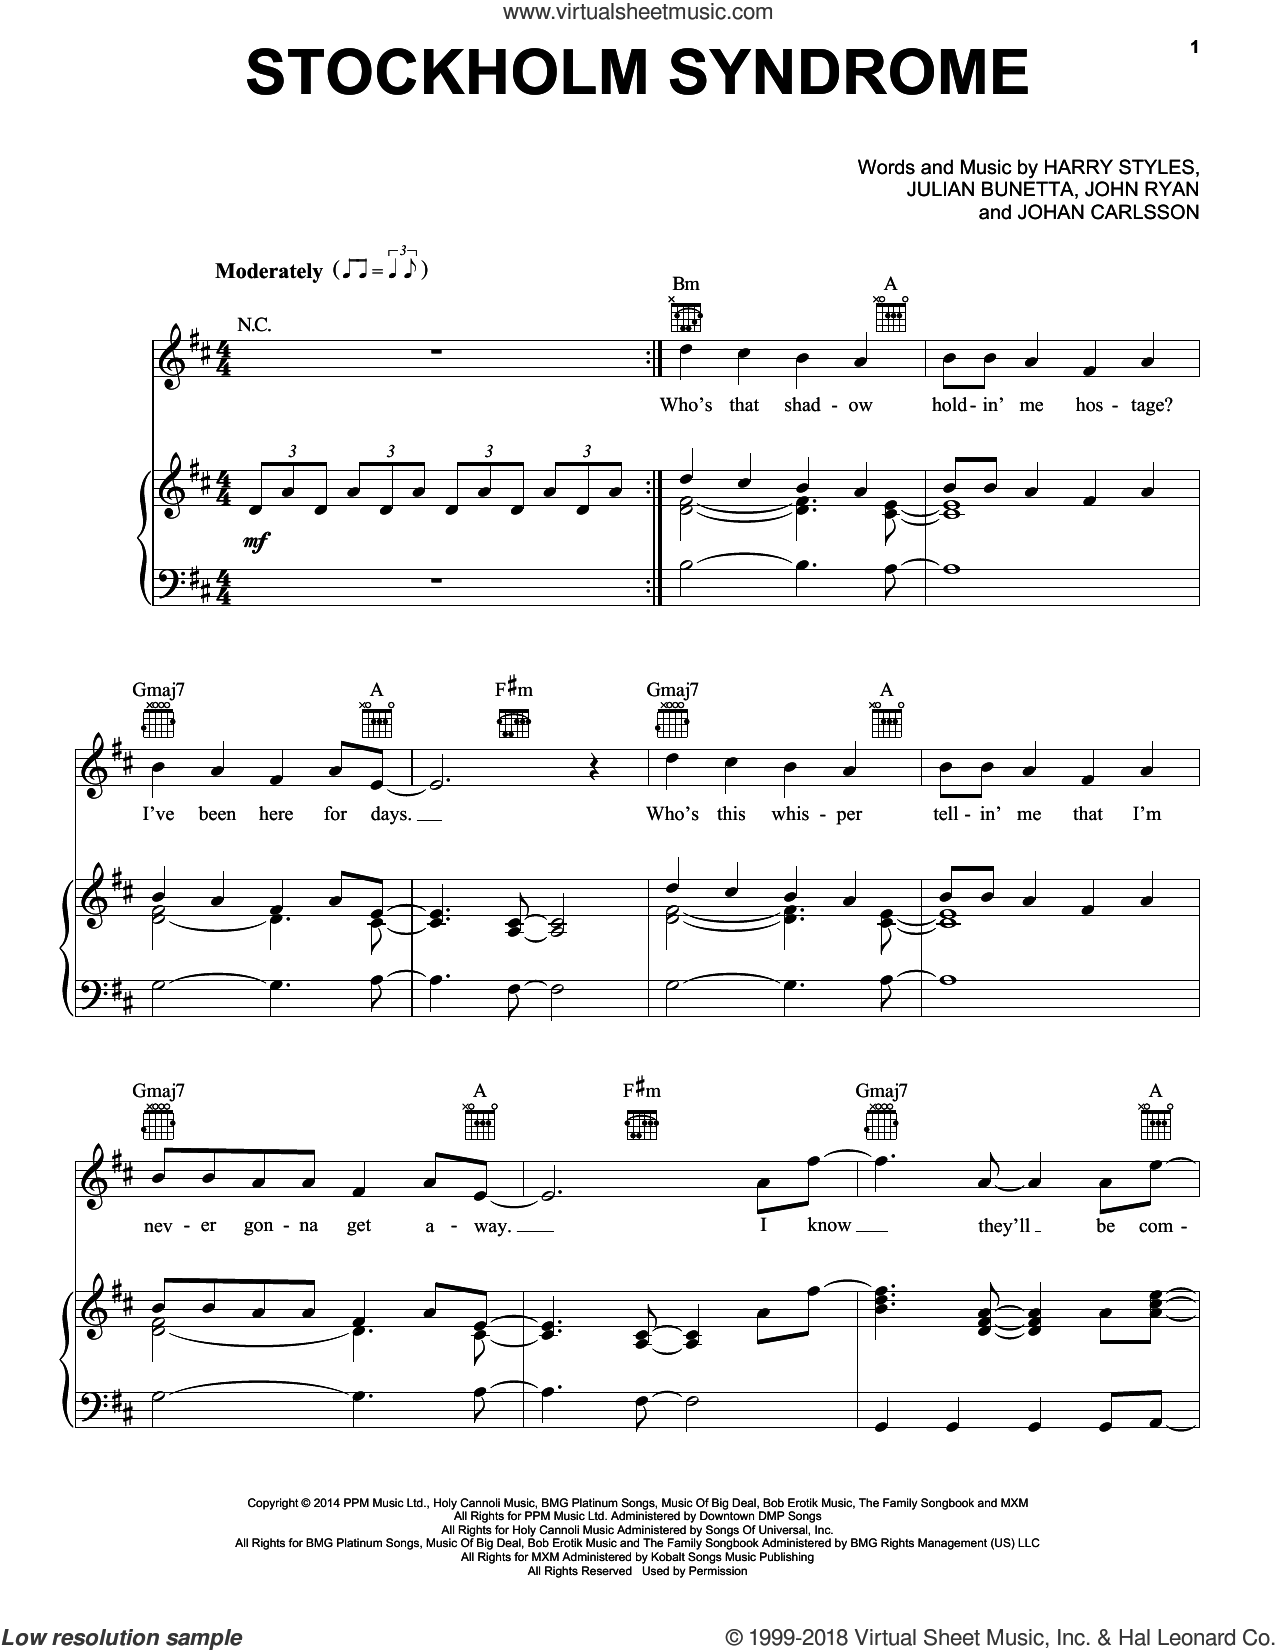 Stockholm Syndrome sheet music for voice, piano or guitar by One Direction, Harry Styles, Johan Carlsson, John Ryan and Julian Bunetta, intermediate skill level